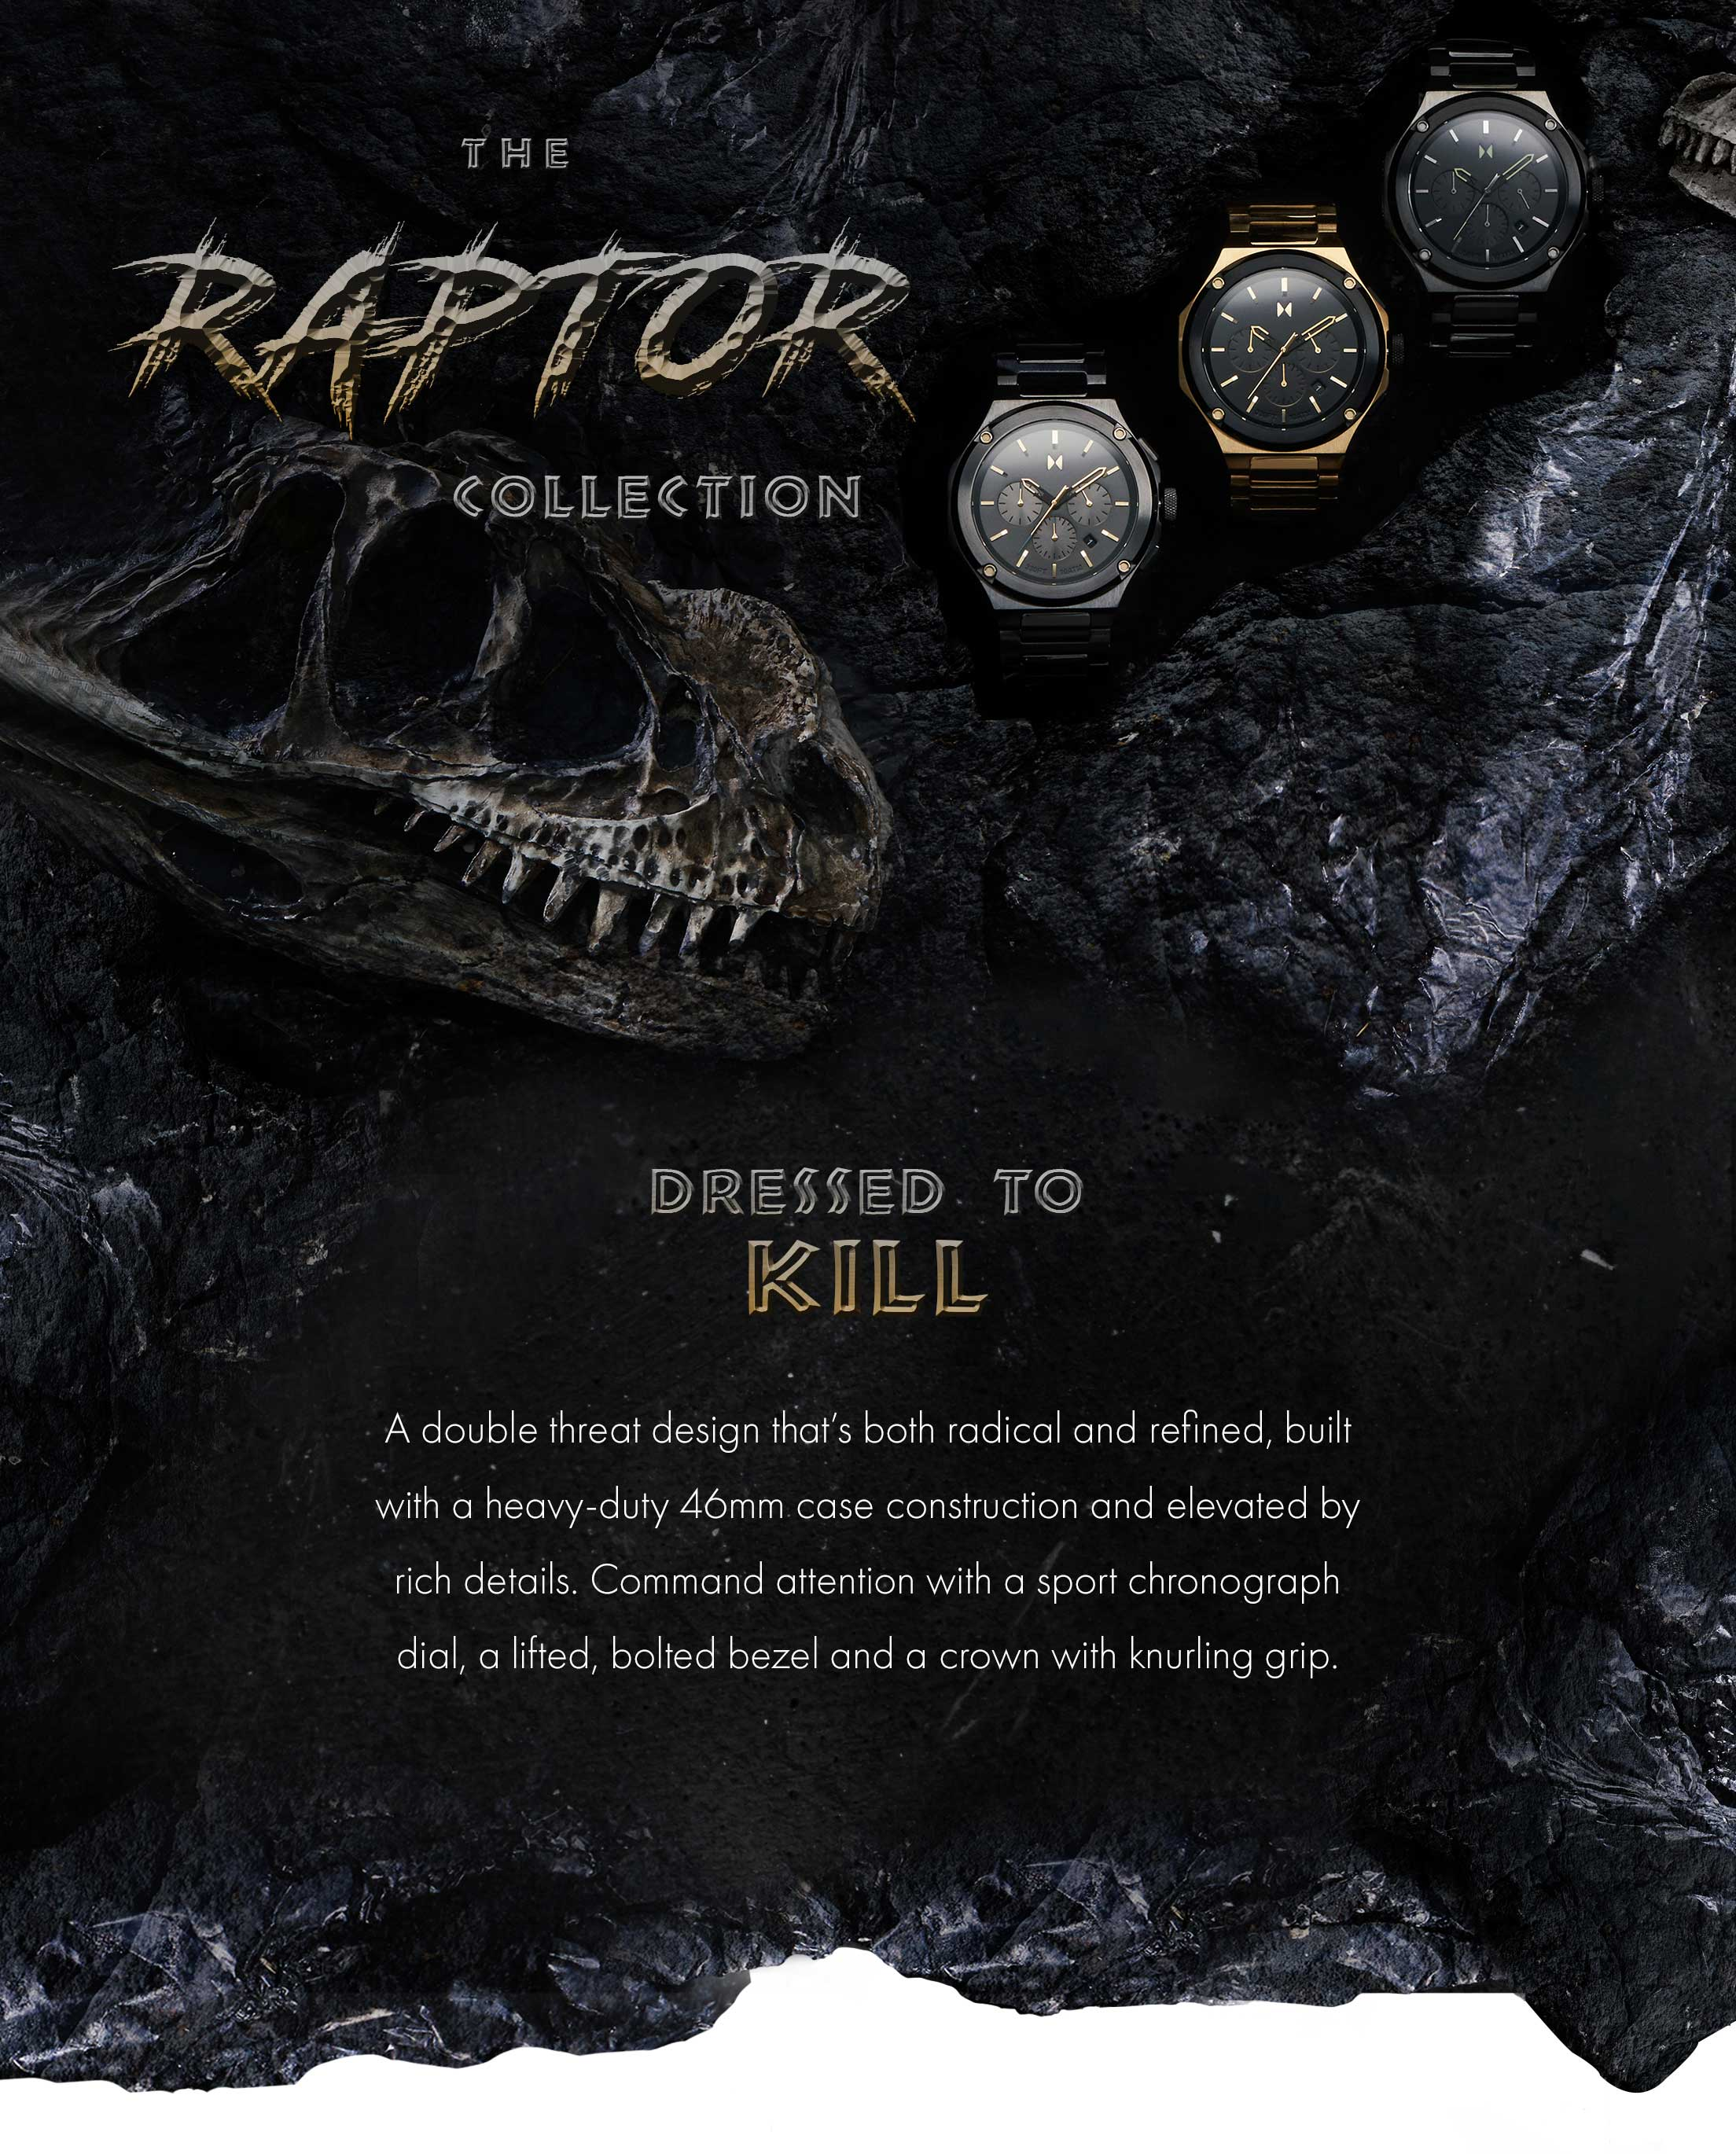 The Raptor Collection | Dressed to Kill | A double threat design that's both radical and refined, built with a heavy-duty 46mm case construction and elevated by rich details. Command attention with a sport chronograph dial, a lifted, bolted bezel and a crown with knurling grip.